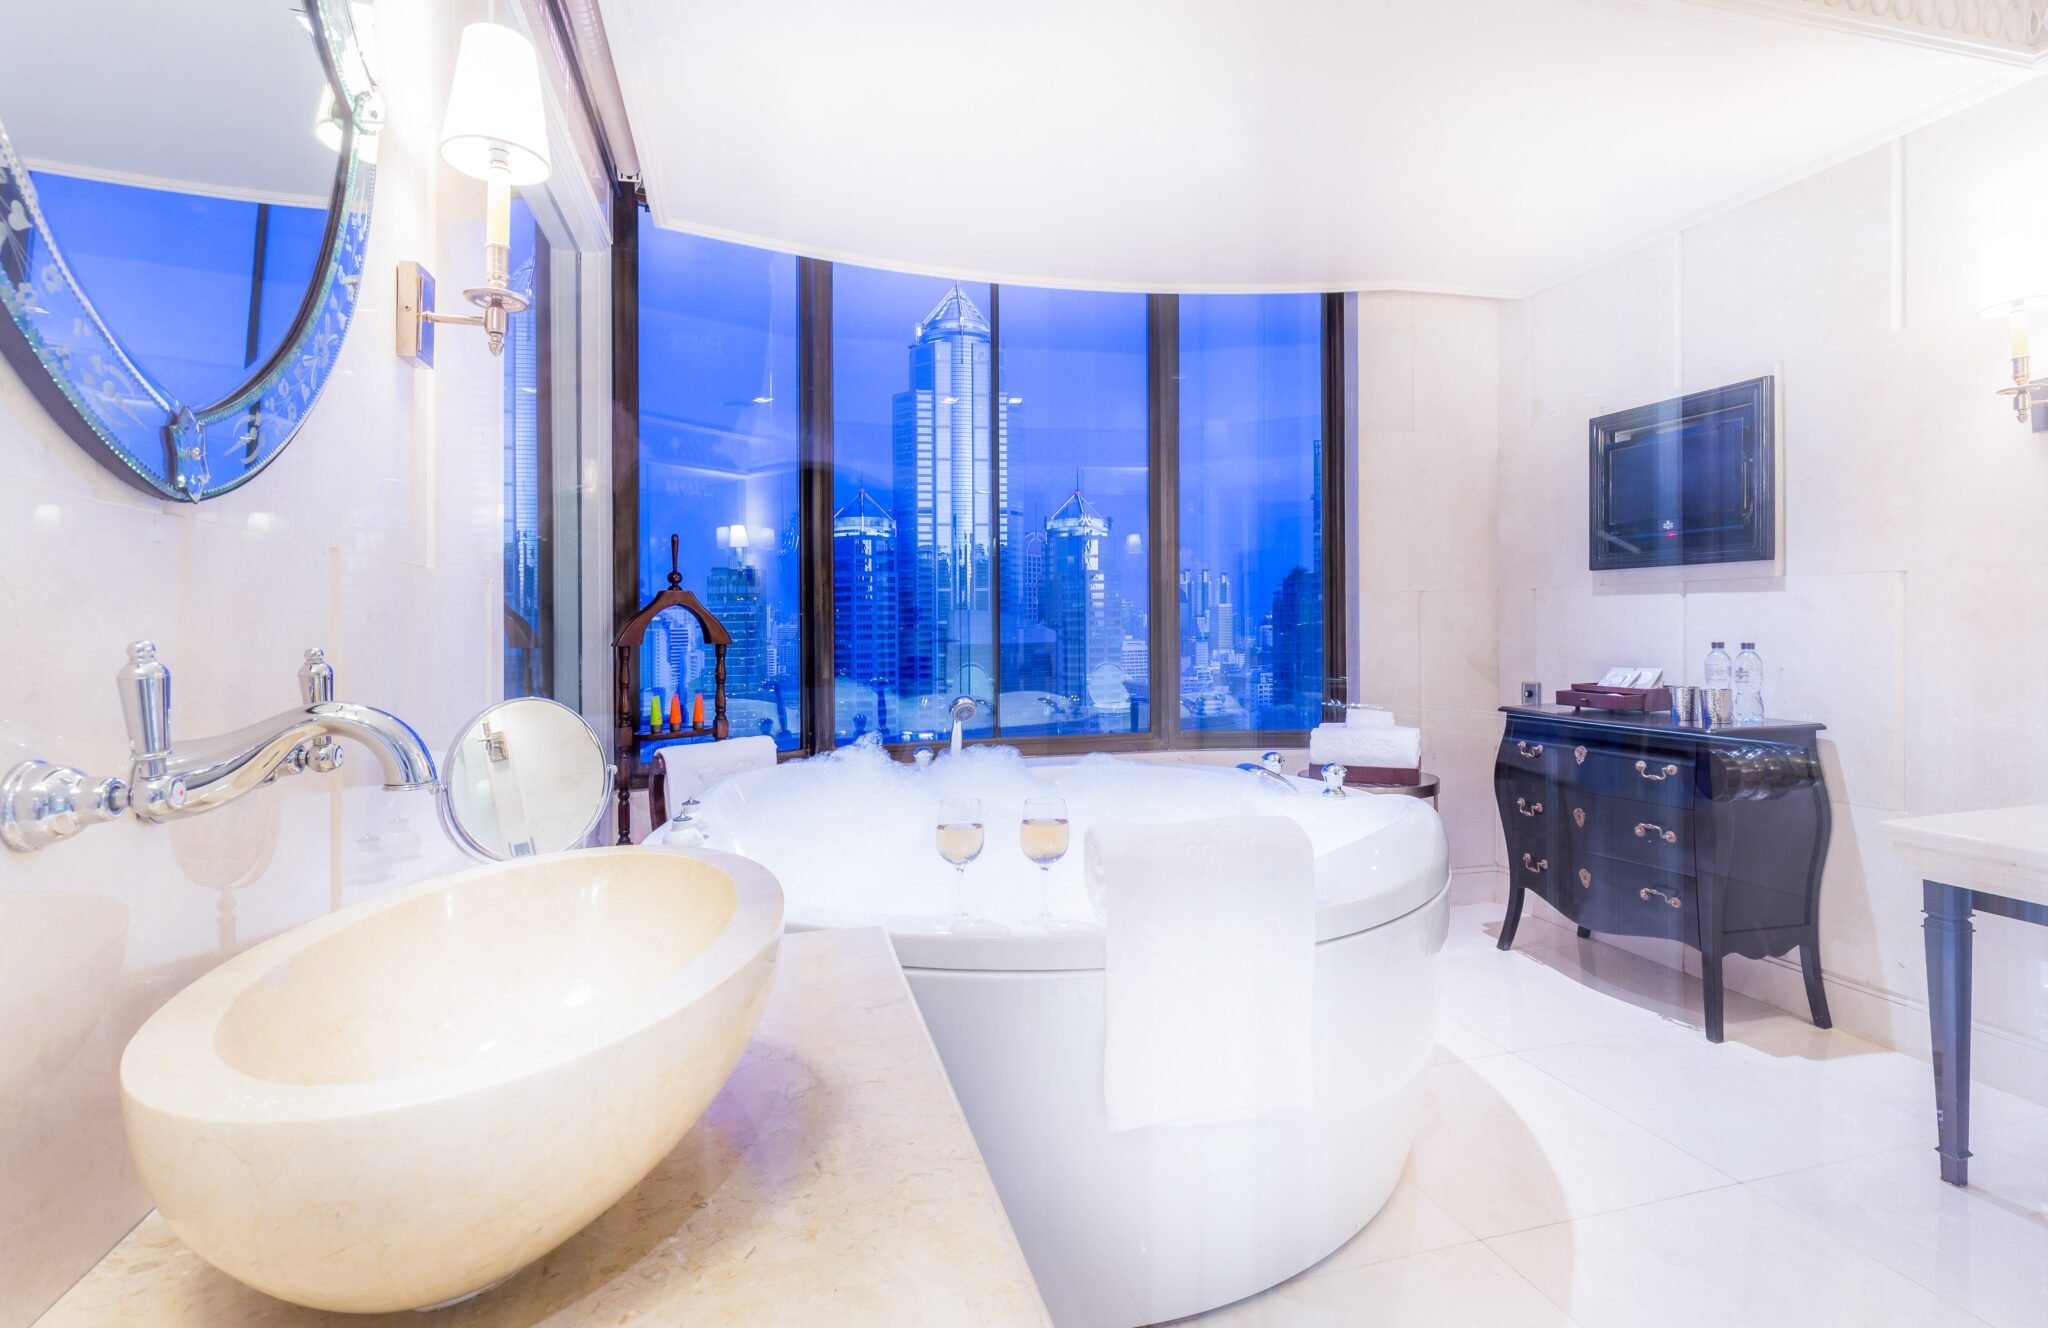 Paranim Penthouse Bathroom at Hotel Muse Bangkok Thailand